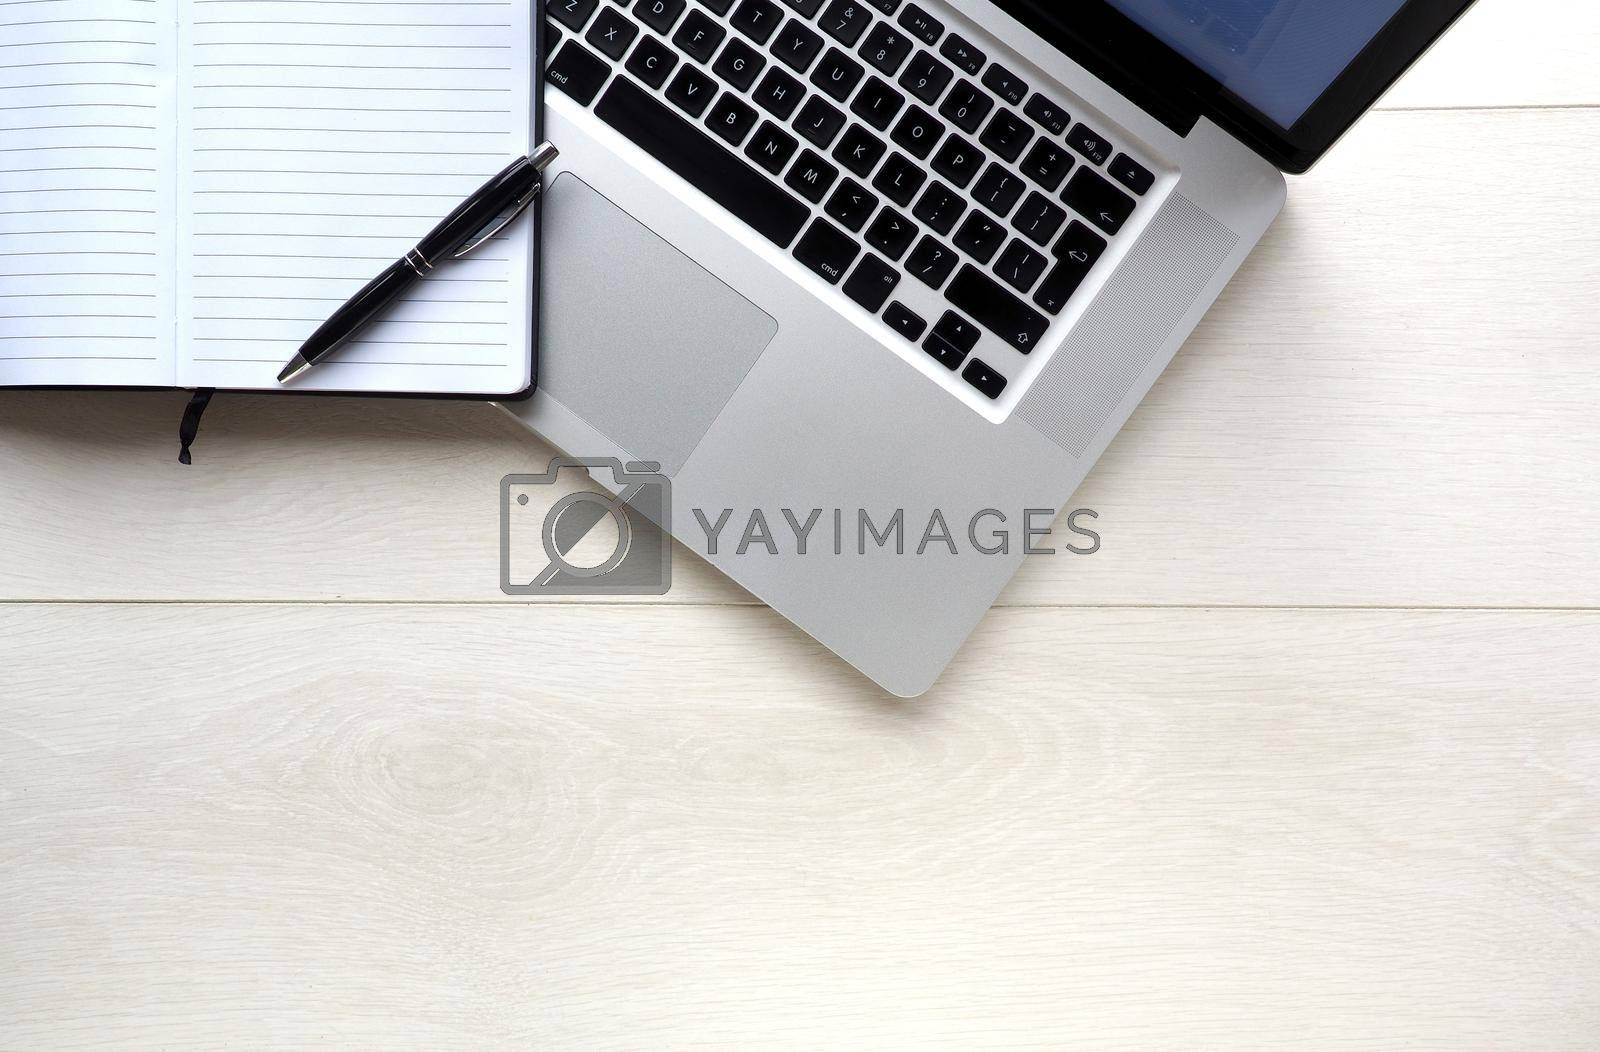 Notepad and laptop computer overhead